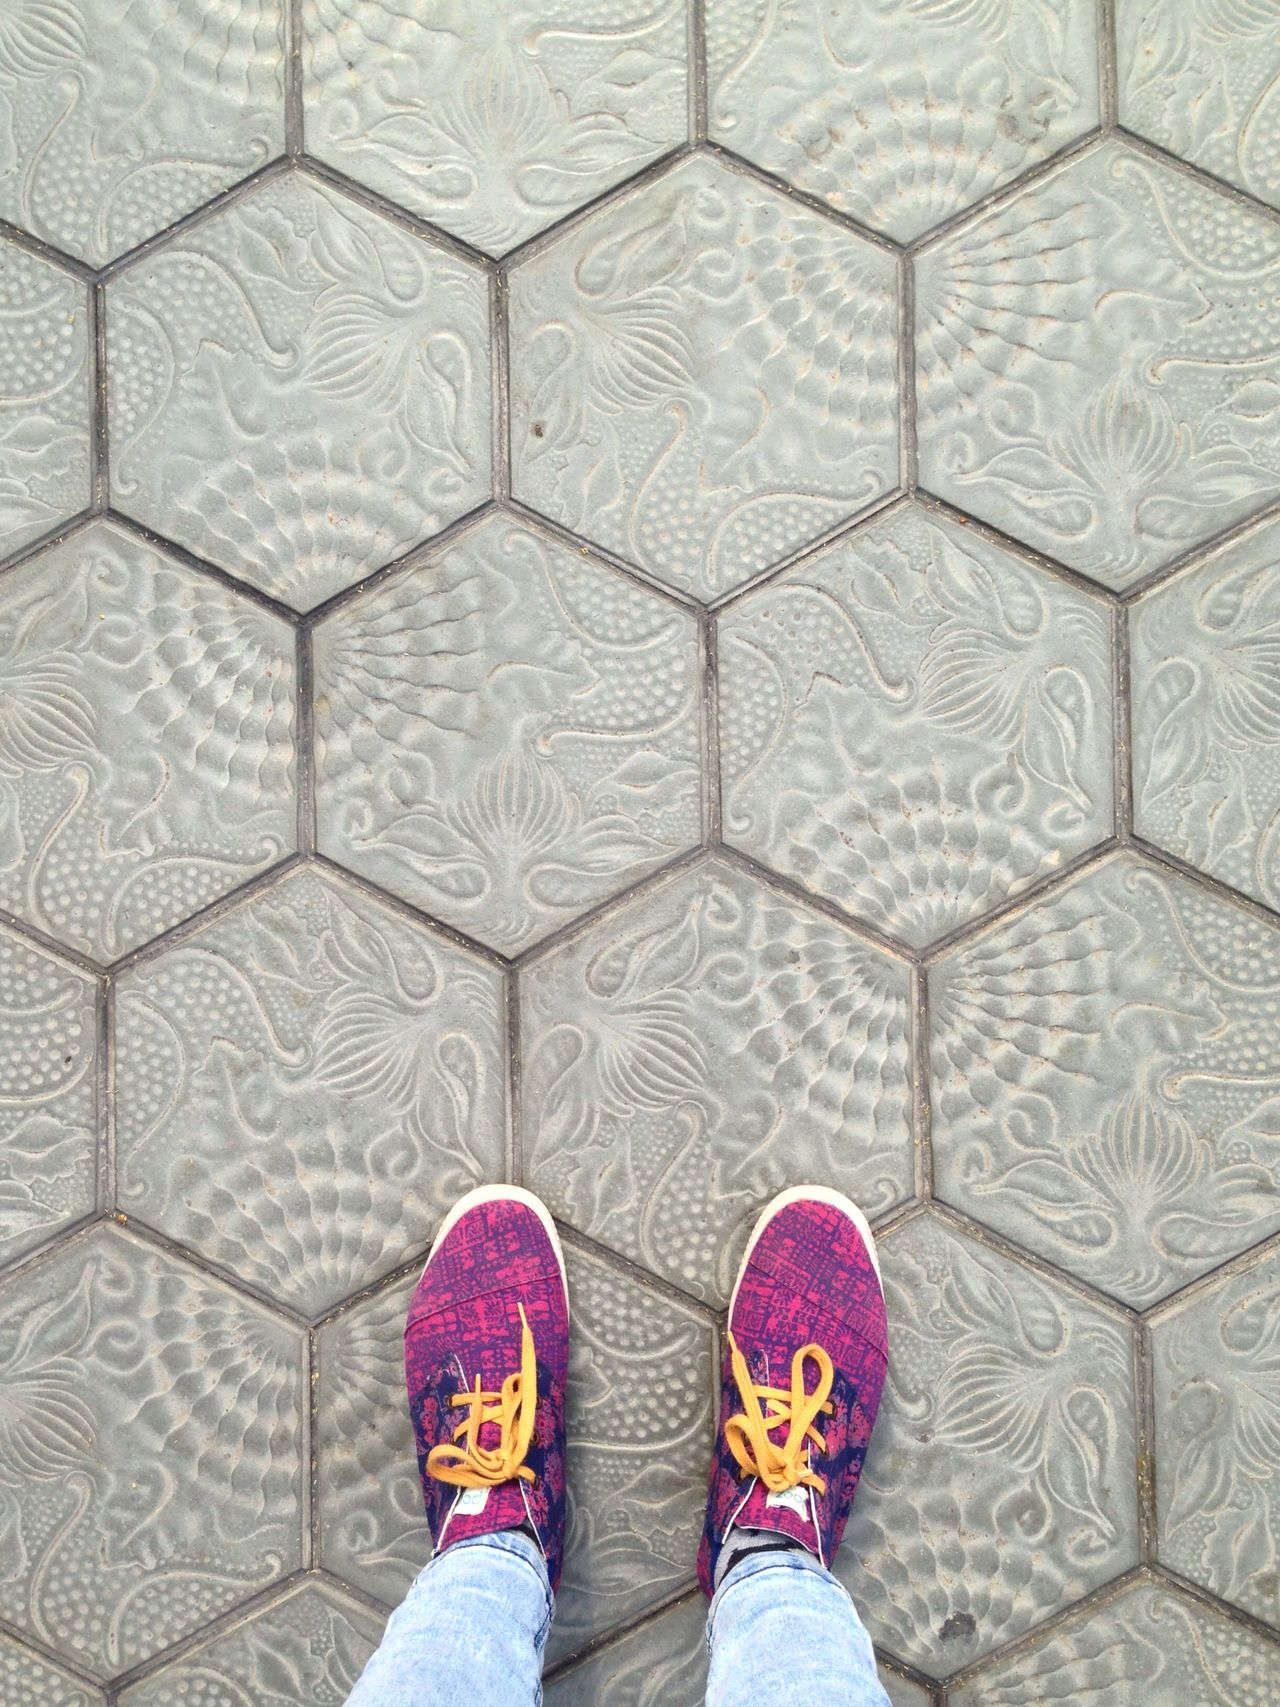 Shoe Standing Pattern Close-up Texture Textures And Surfaces Pavement Barcelona SPAIN Gaudi Sneakers Pink Looking Down Ground Textured  Textures Pattern Pieces EyeEm Best Shots Eye4photography  Streetphotography Street Street Photography Urban Jeans Colors